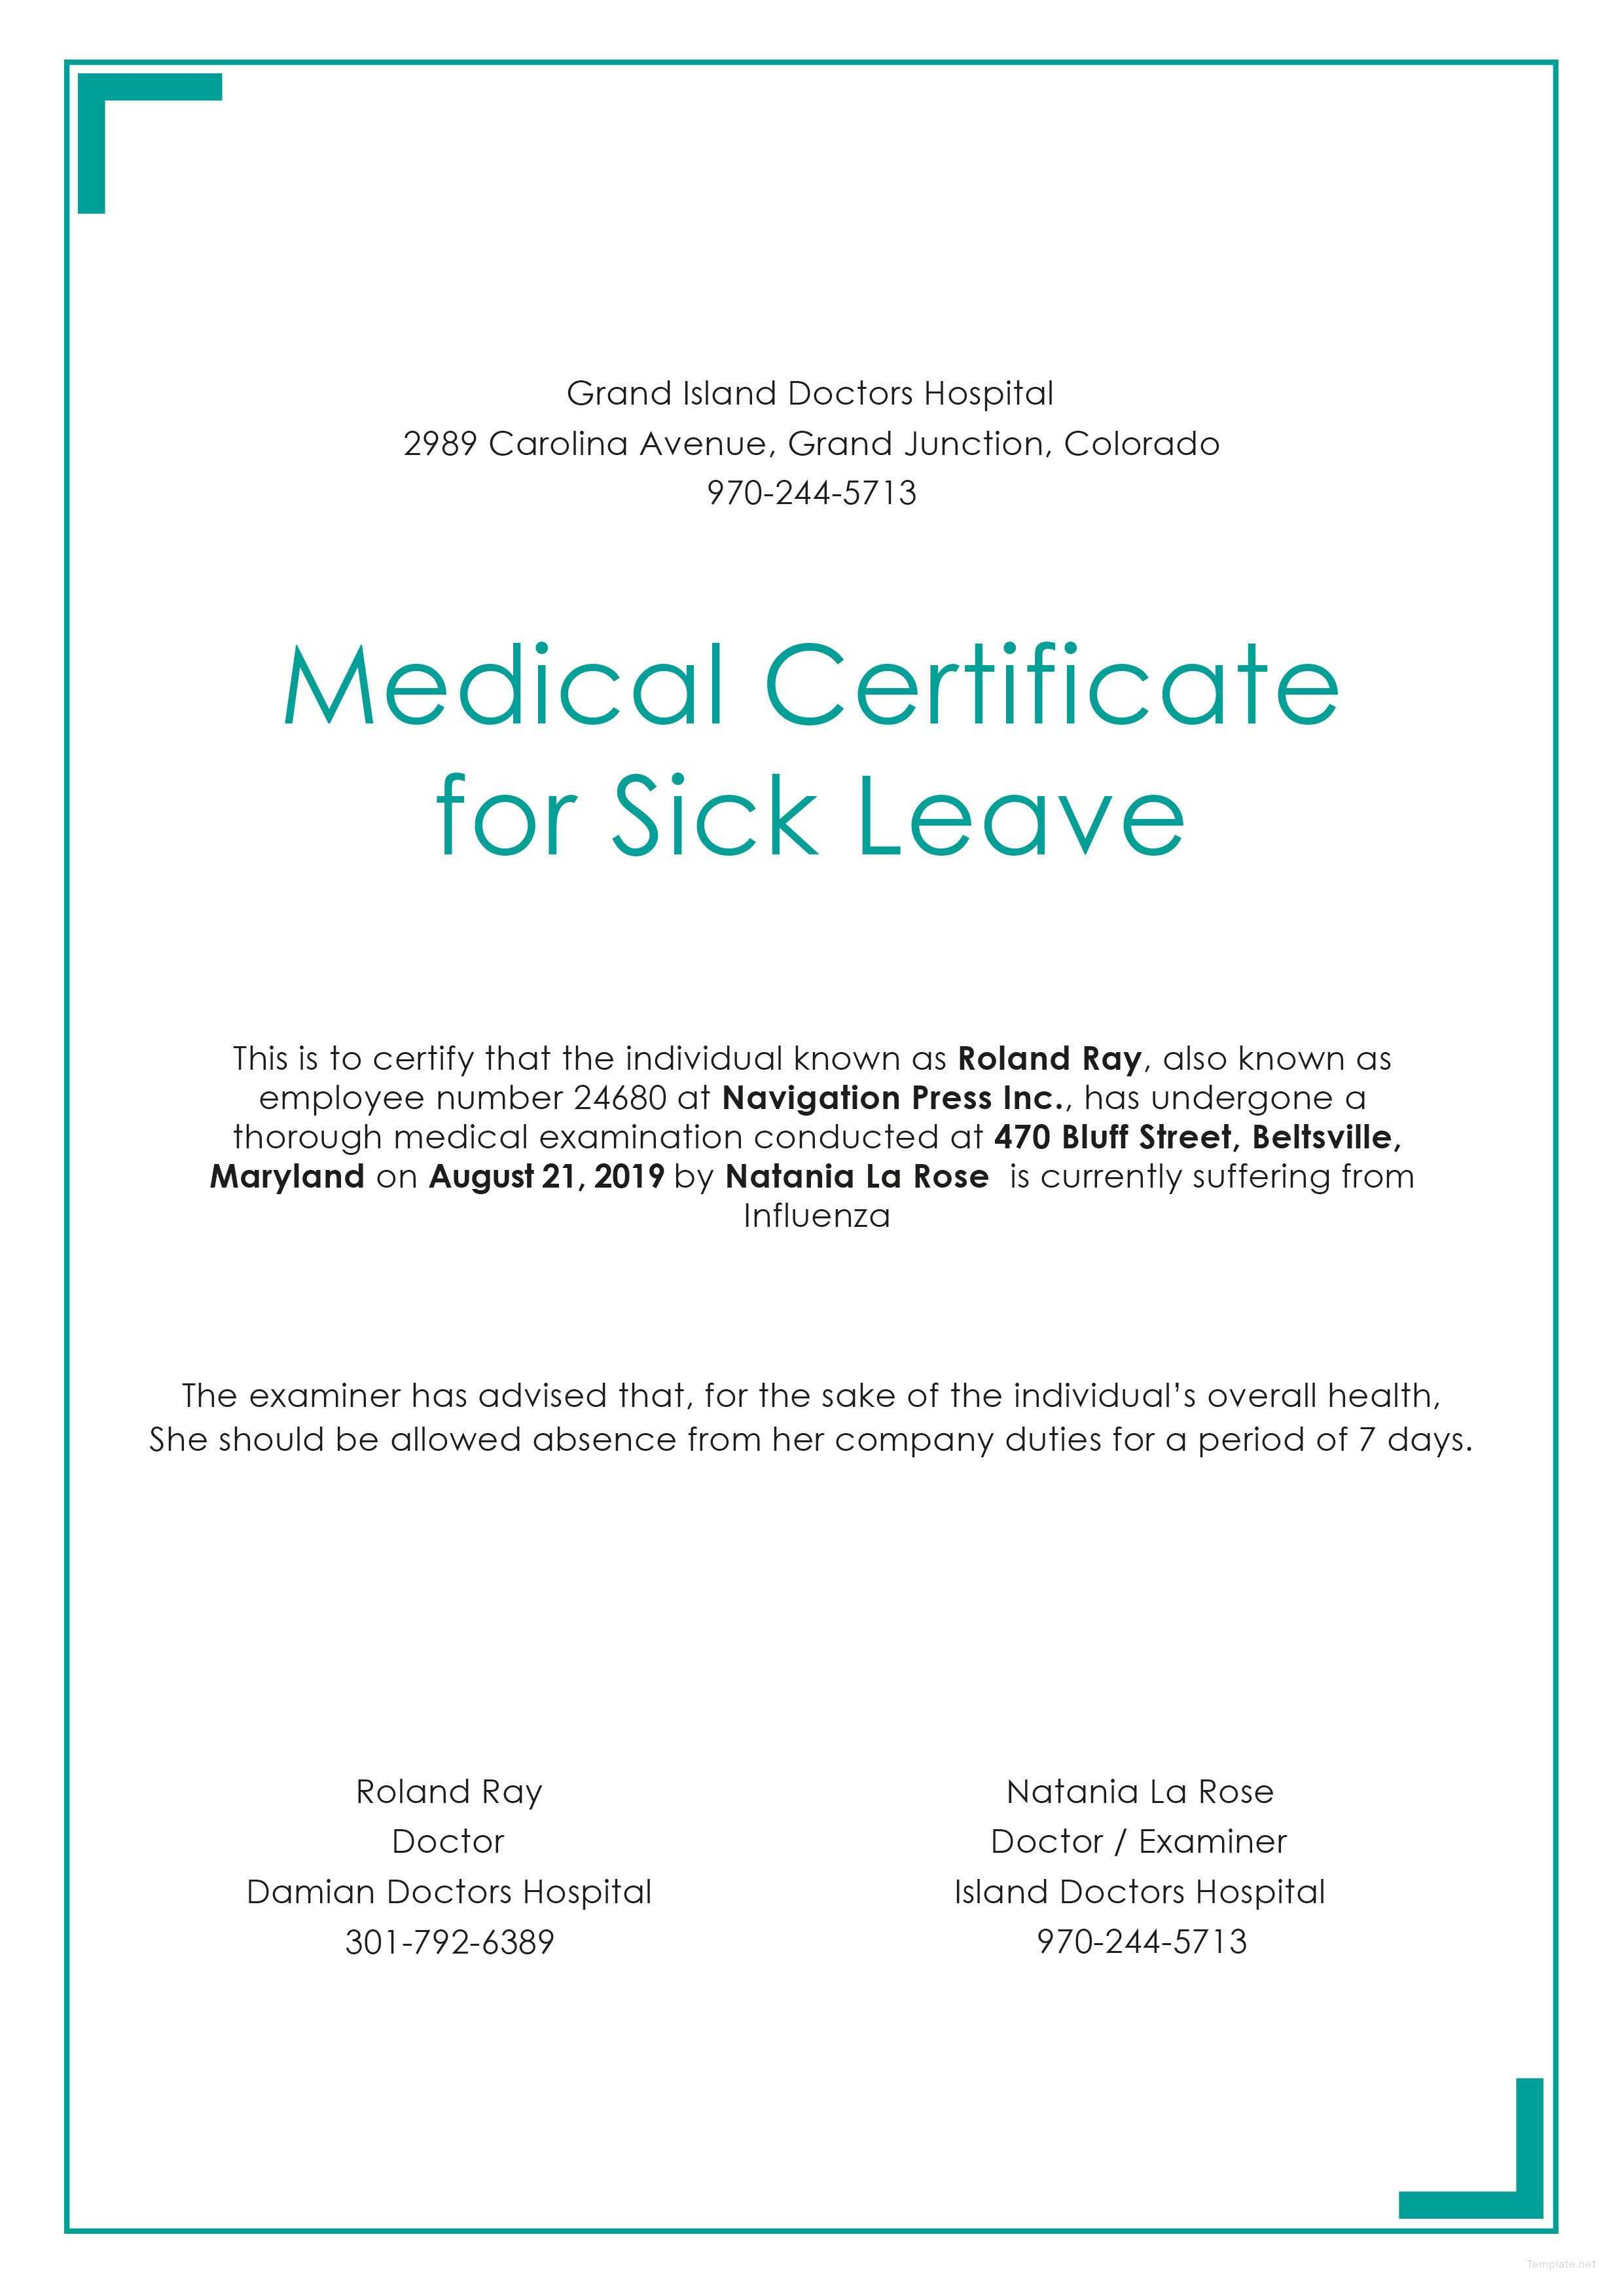 Free Medical Certificate For Sick Leave | Medical, Doctors With Free Fake Medical Certificate Template